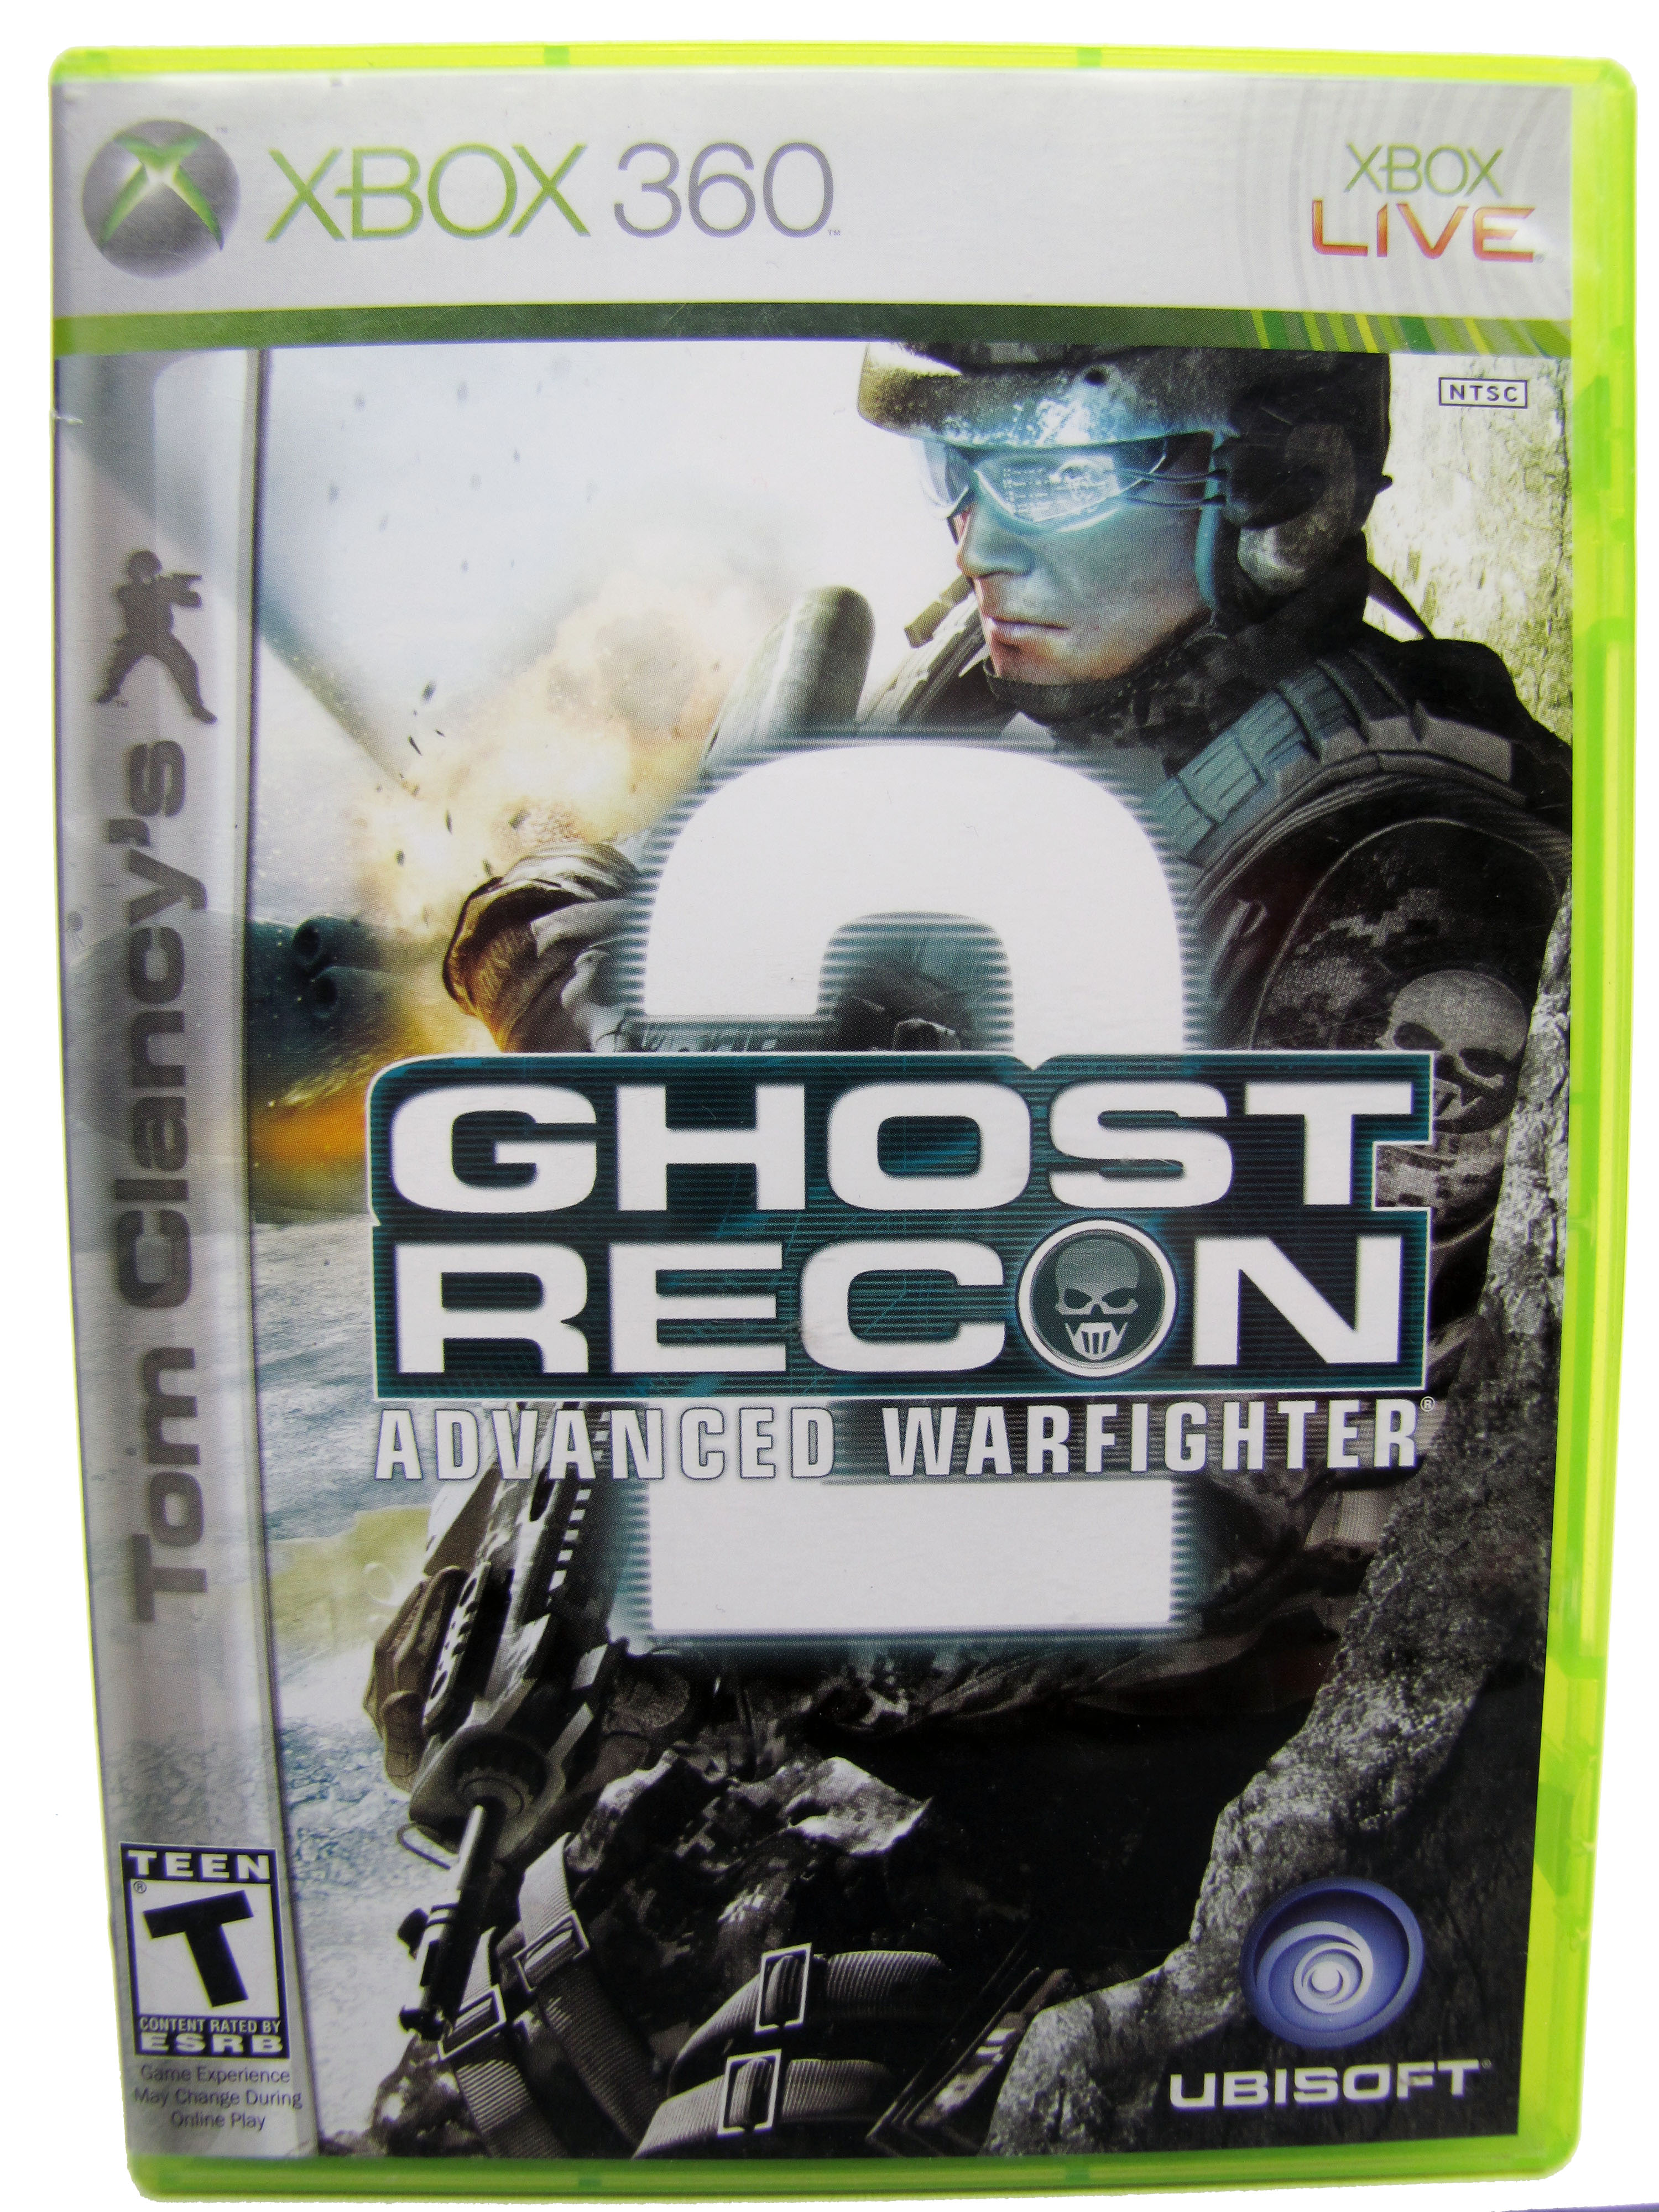 XBOX 360 Tom Clancy's Ghost Recon: Advanced Warfighter 2 - 2007